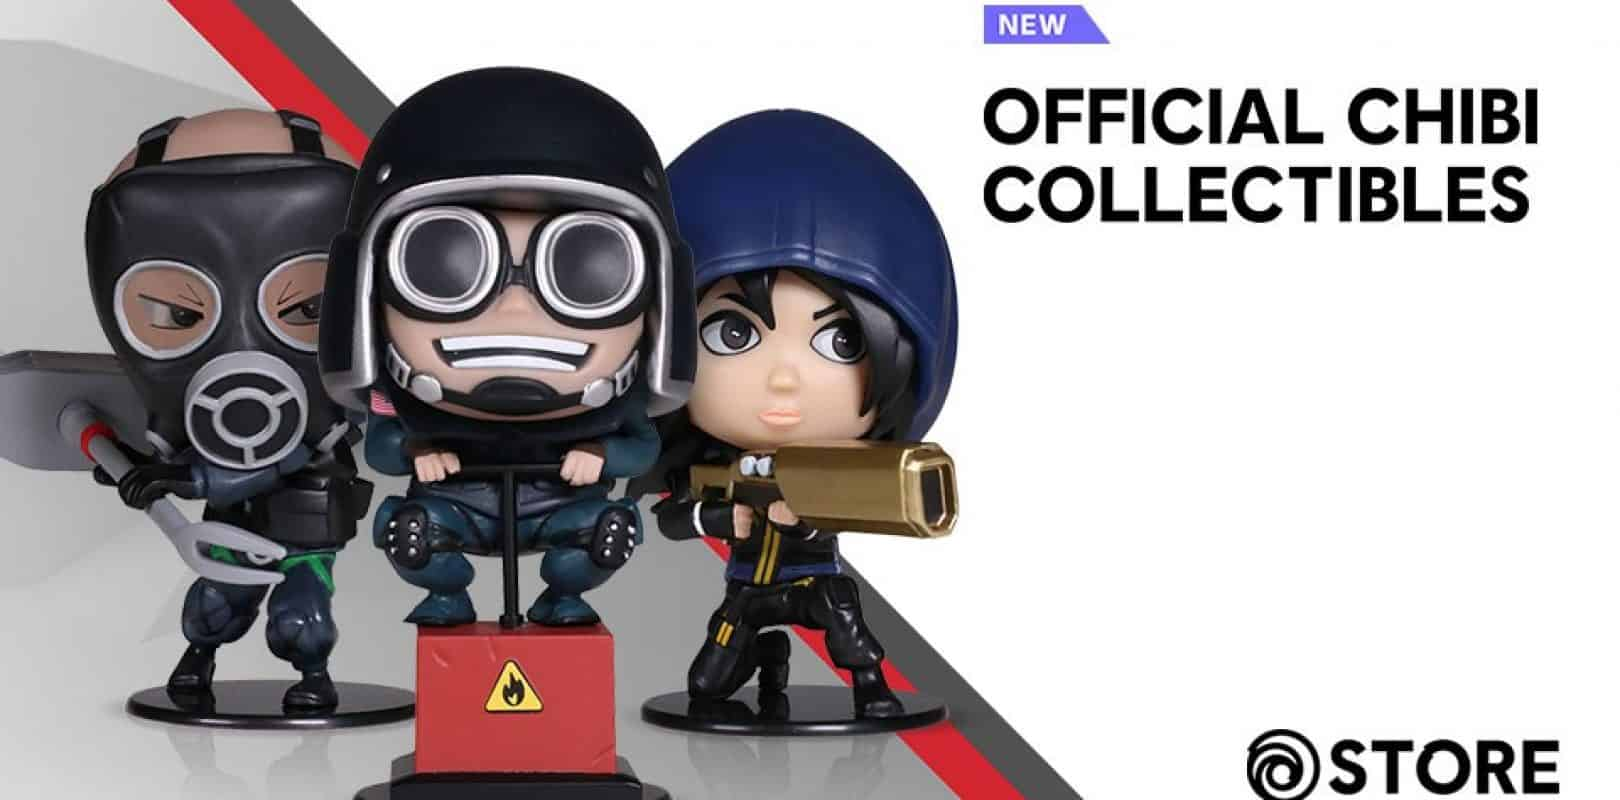 Rainbow Six: Siege - Collection Series 2 Released - All